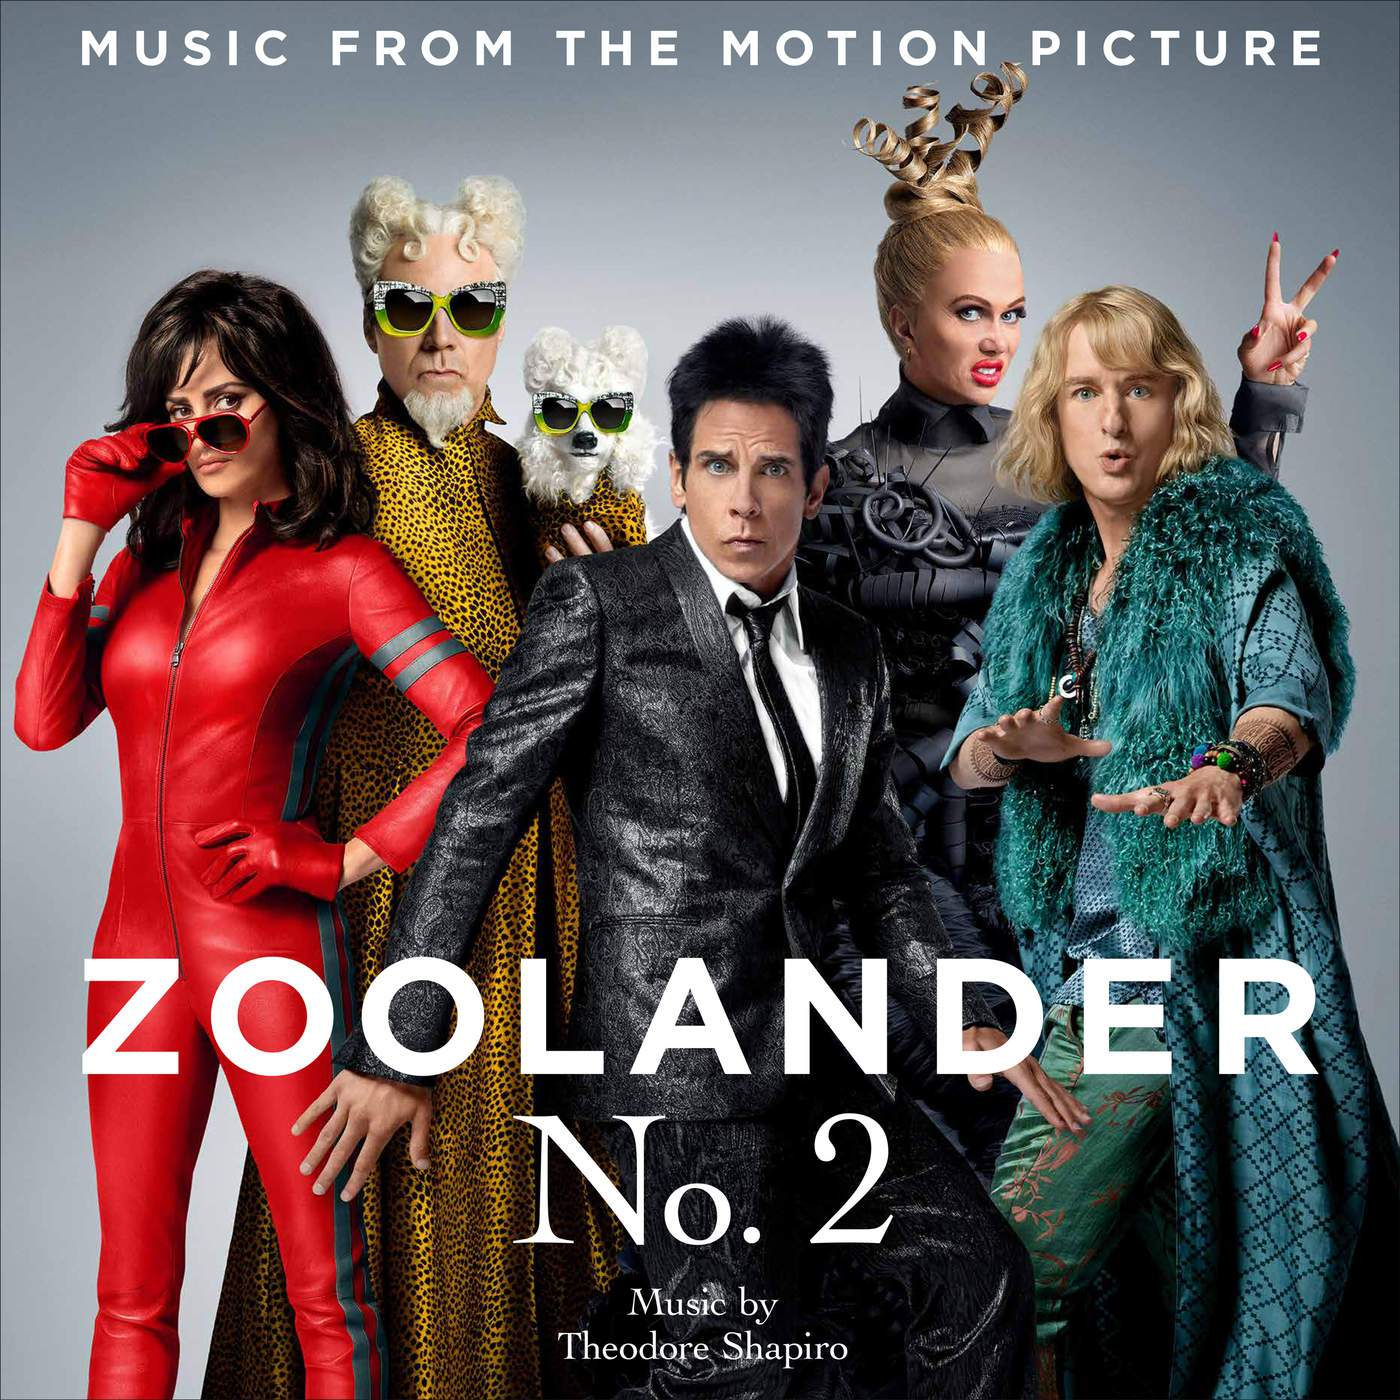 Zoolander 2 clipart royalty free library Zoolander-2-Soundtrack – Jewel 98.5 clipart royalty free library